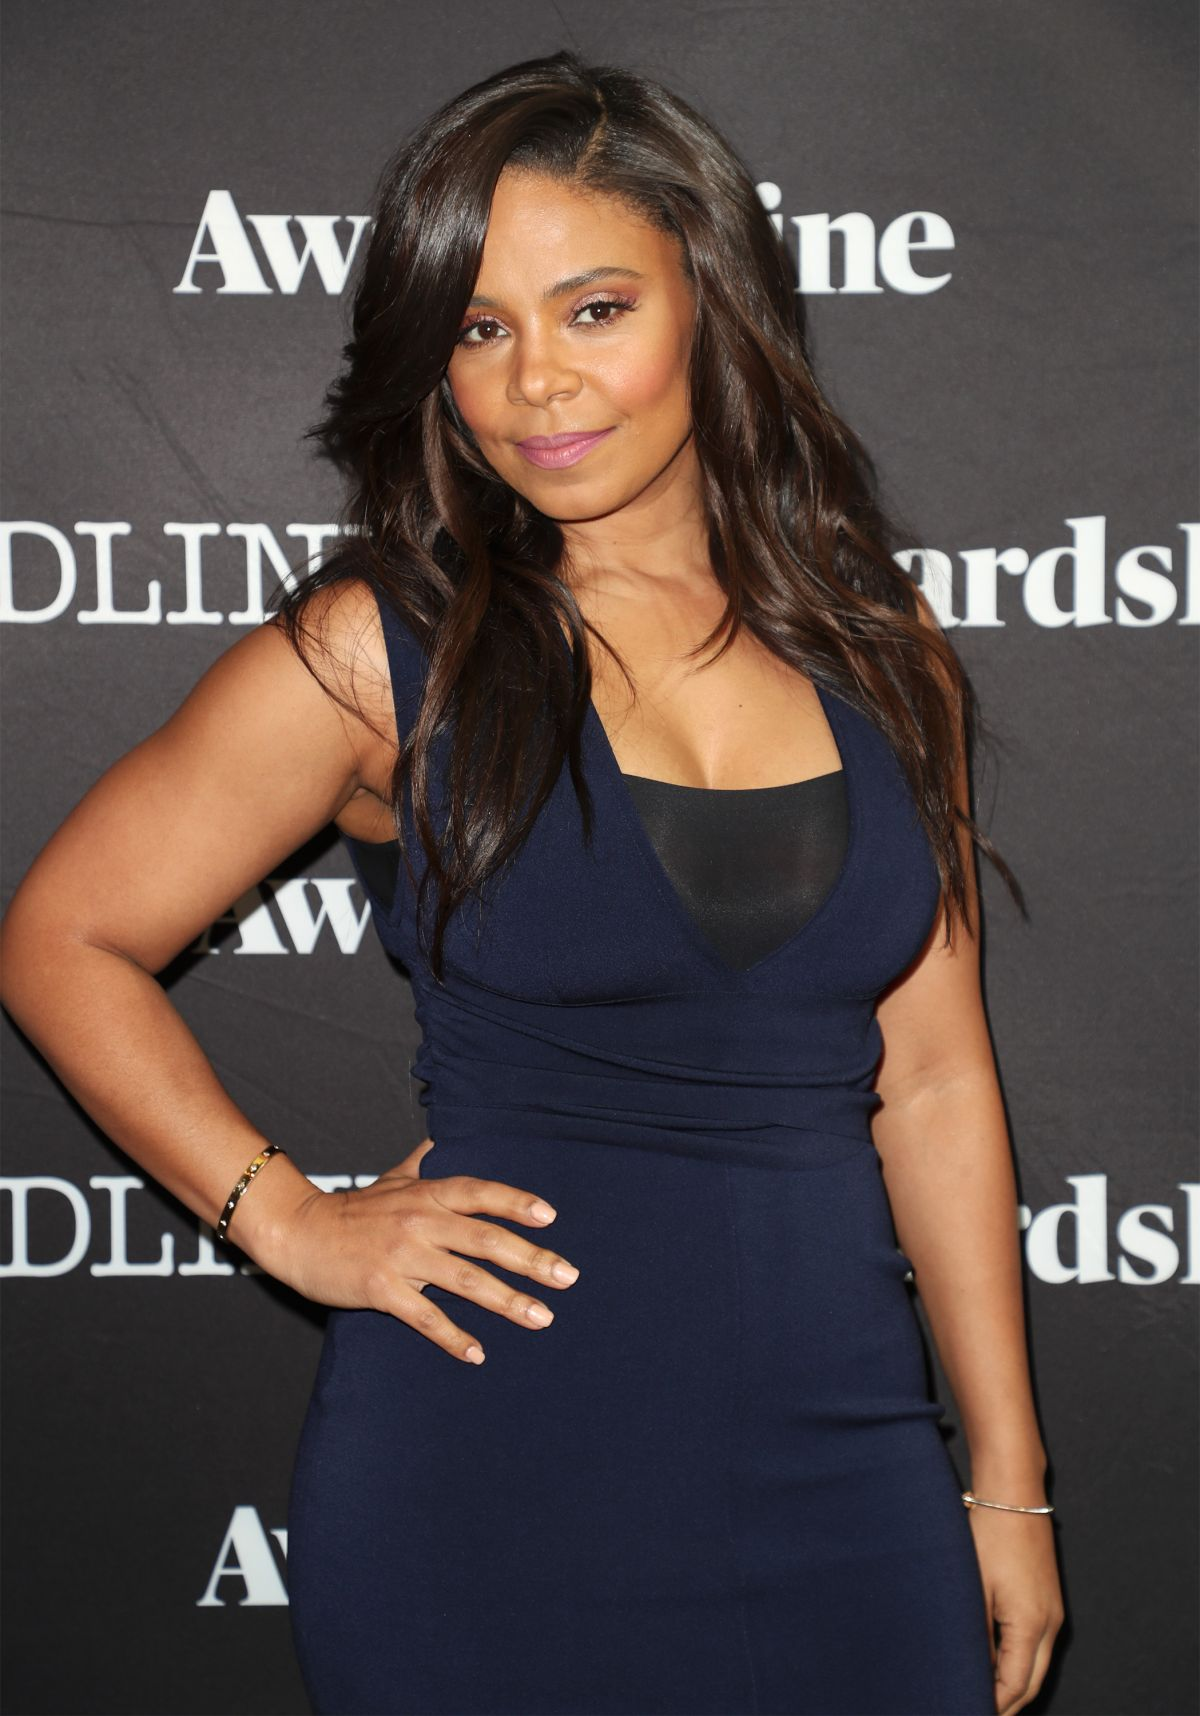 SANAA LATHAN at Contenders Emmys Presented by Deadline in Los Angeles 04/09/2017